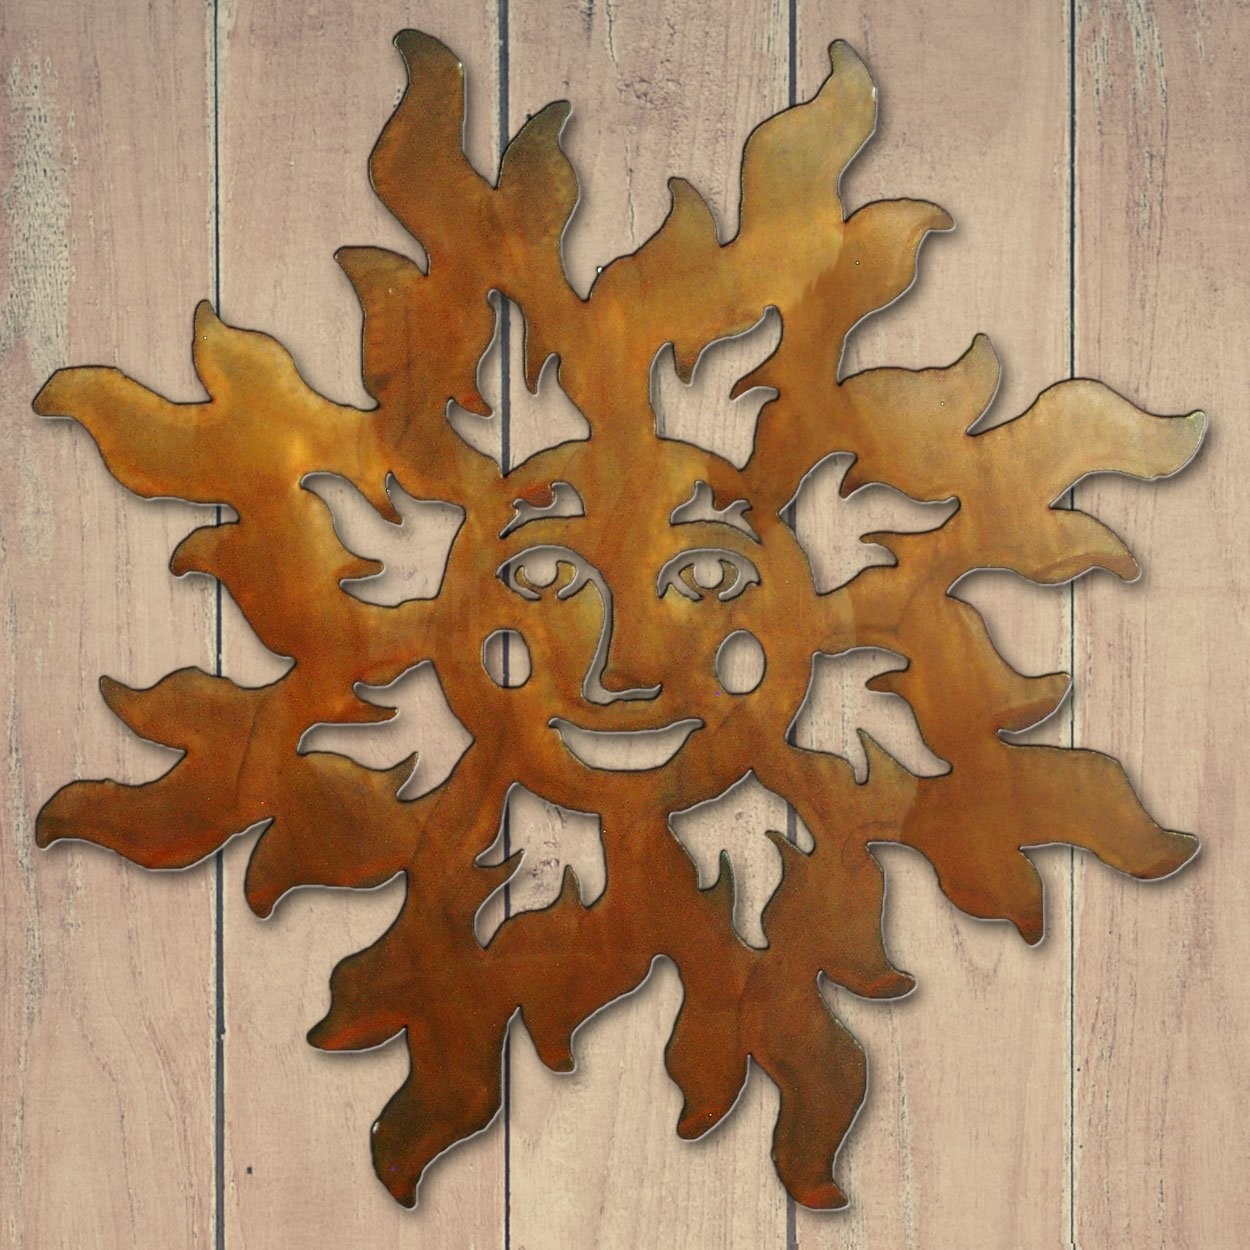 18In Happy Face Sun 3D Metal Wall Art – Rust – 165222 For Well Known Choose Happiness 3D Cursive Metal Wall Decor (Gallery 19 of 20)